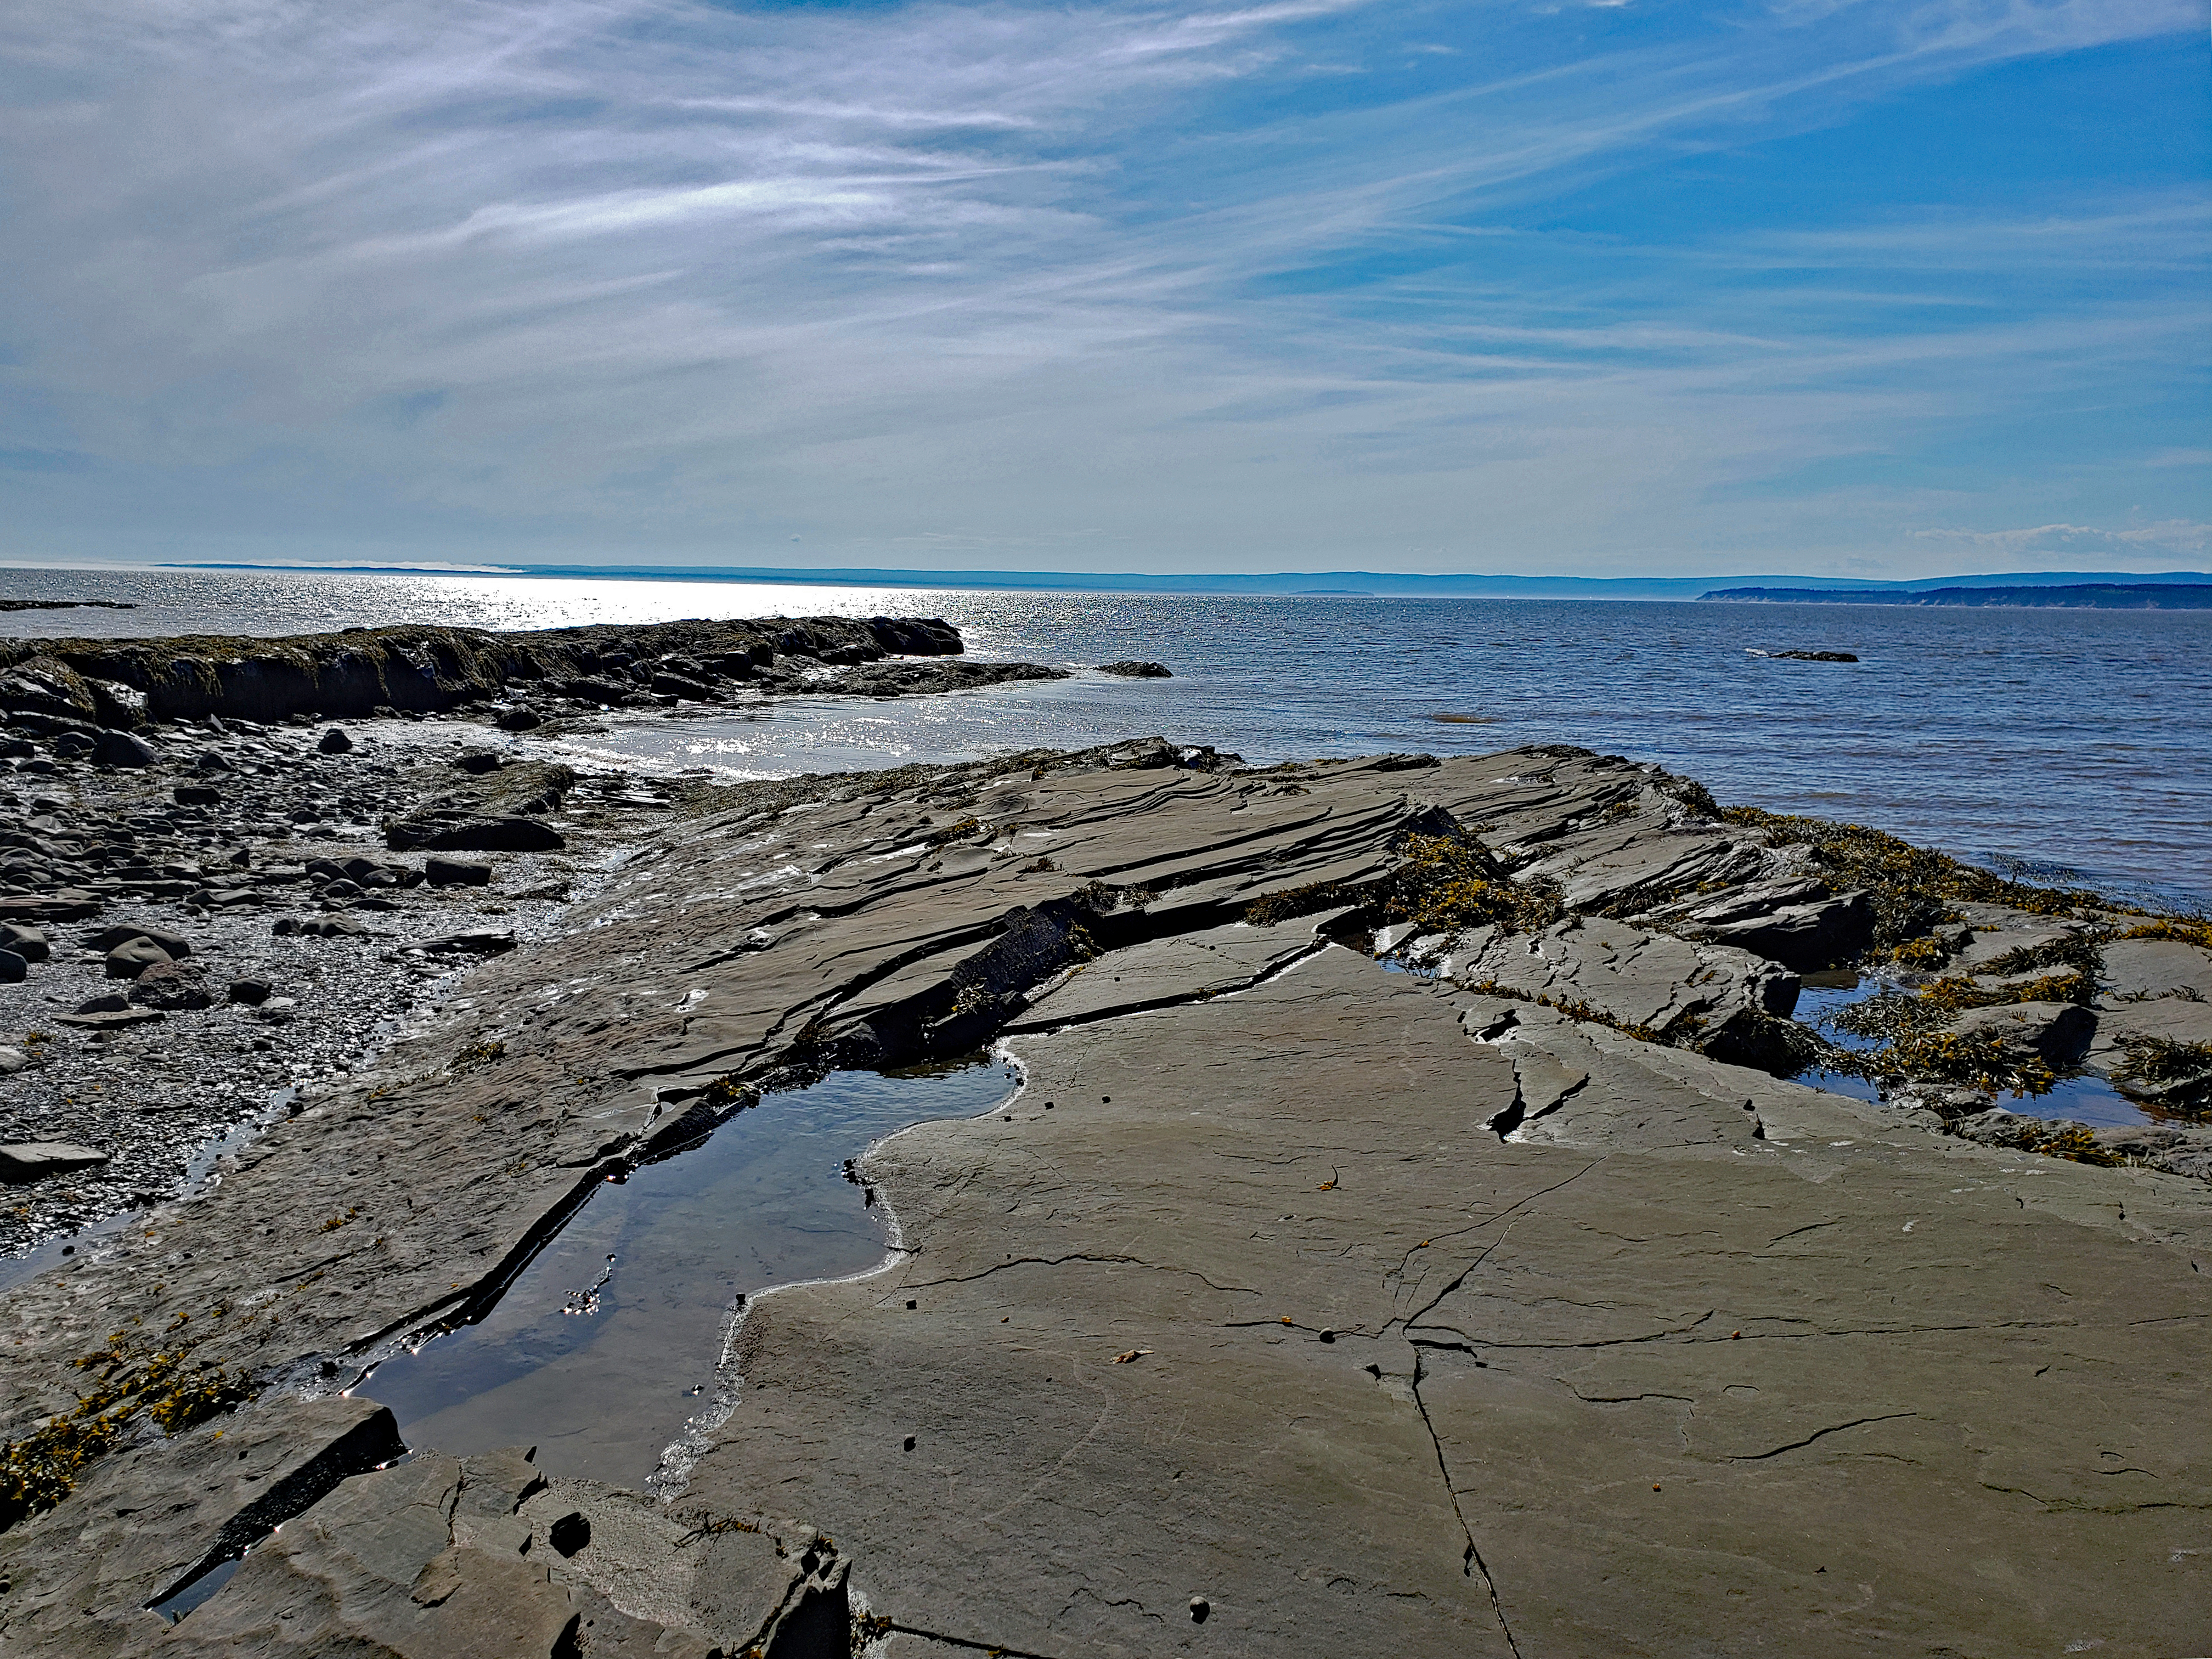 """<p>Bay of Fundy, Joggins, NS</p><p class=""""lightbox-share""""><span>Share: </span><a class=""""lightbox-fb"""" href=""""javascript:void(0);"""">Facebook</a><a class=""""lightbox-twit"""" href=""""https://twitter.com/home?status=I%20voted%20for%20Fundy%20Reefs%20in%20the%20Cornice%20Calendar%20Contest.%20Choose%20your%20favourite%206%20photos:%20http://ow.ly/yCSmZ"""" target=""""_blank"""">Twitter</a></p><input type=hidden class=voteid value=1890 />"""